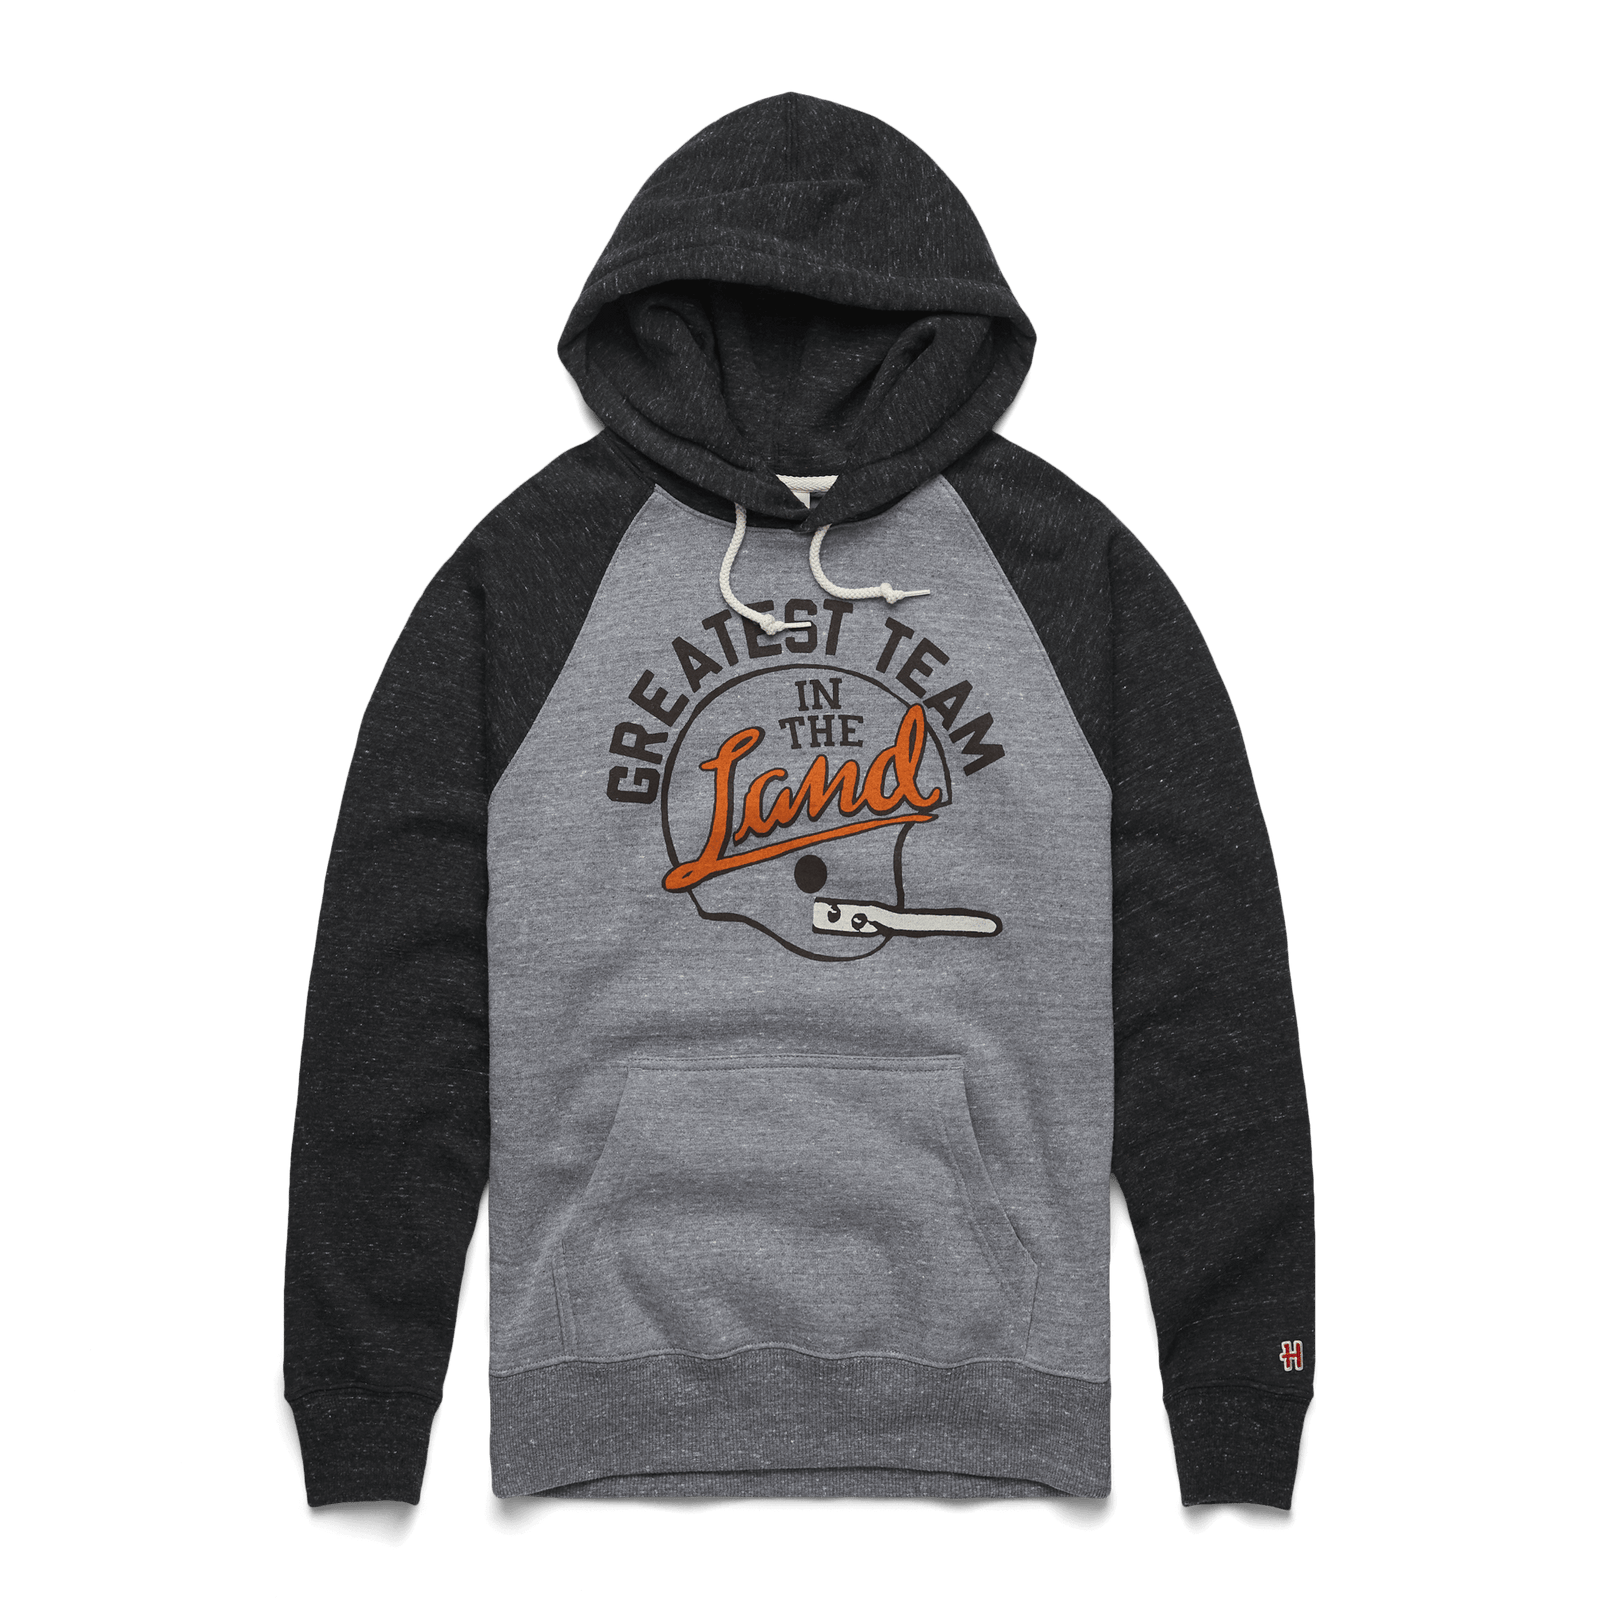 Greatest Team In The Land Hoodie